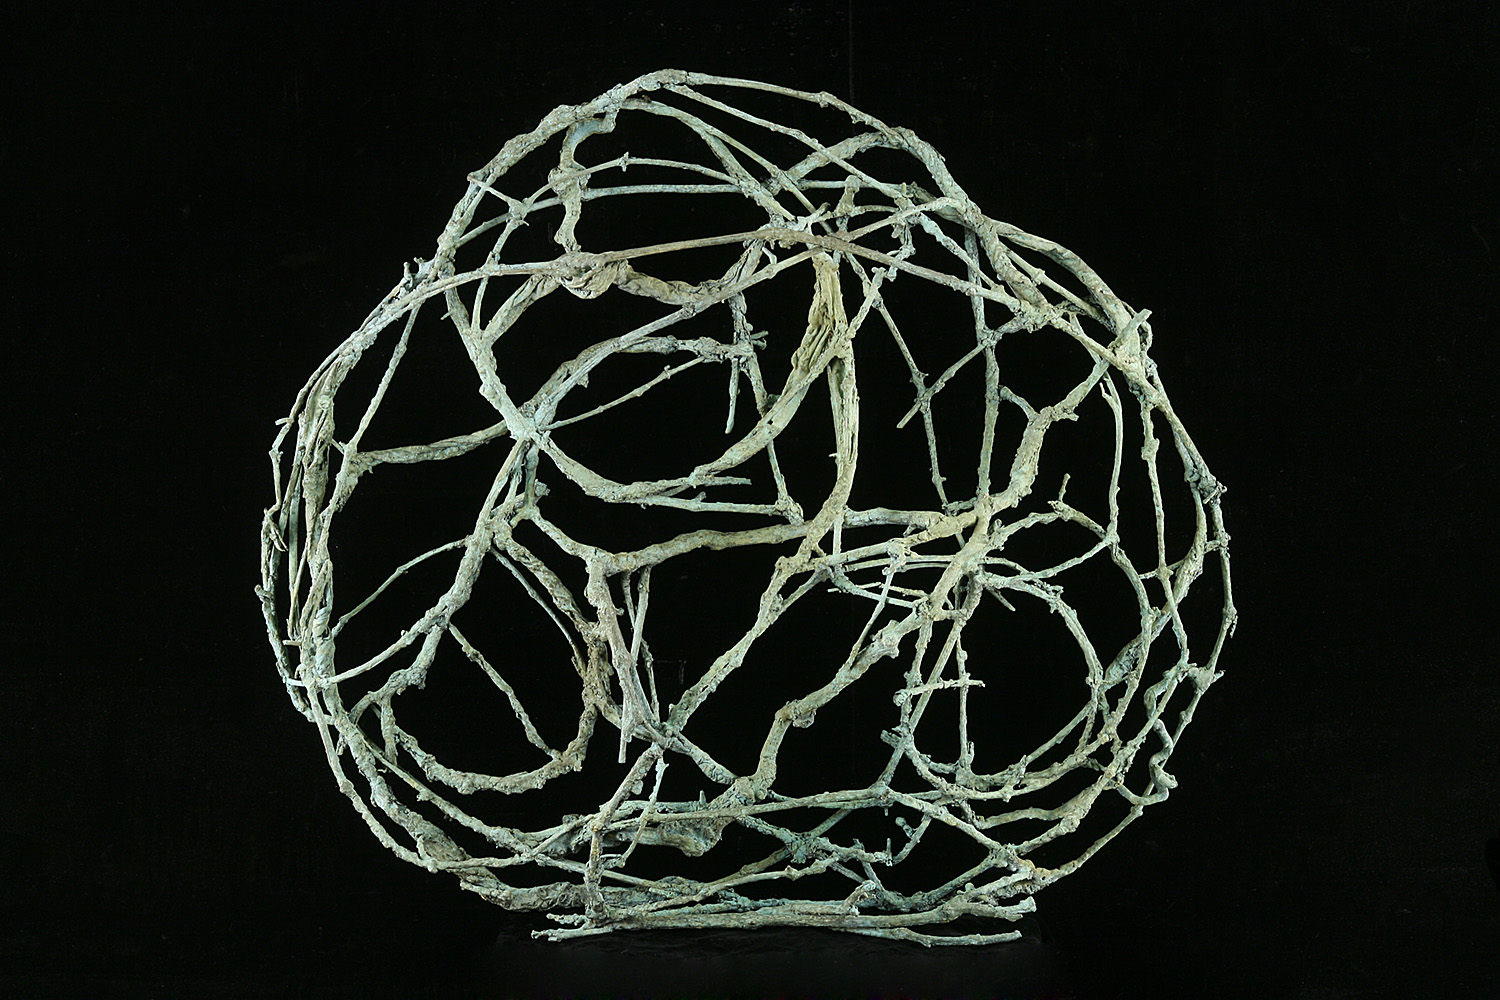 OVAL OF BRANCHES